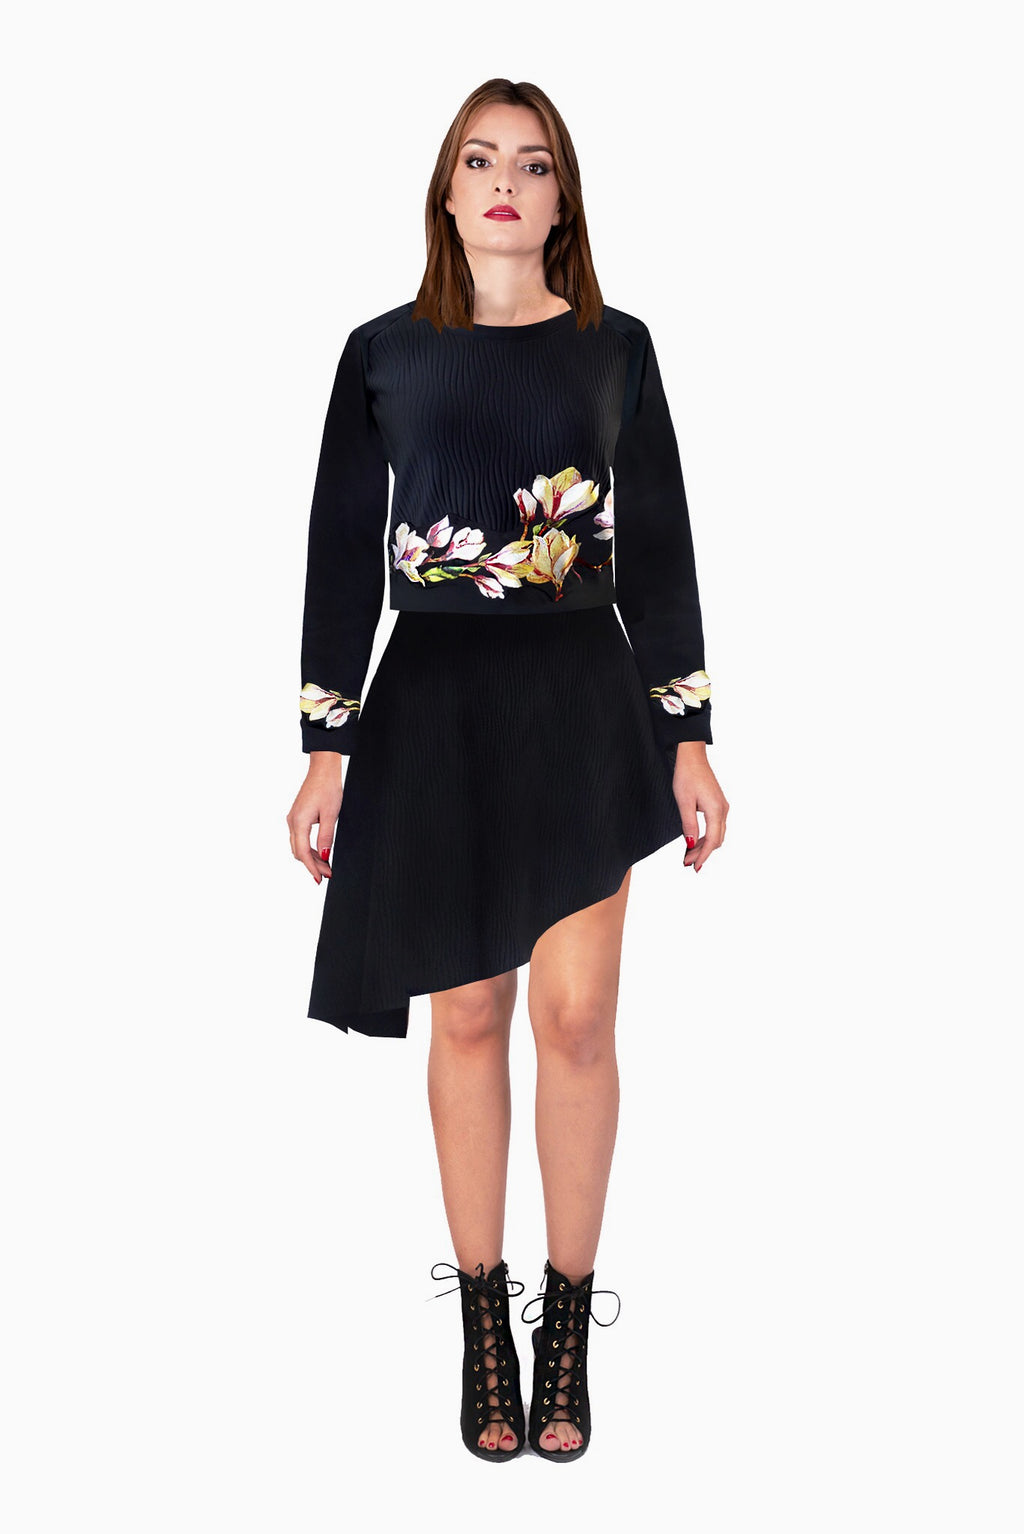 Cropped sweater with neoprene flowers